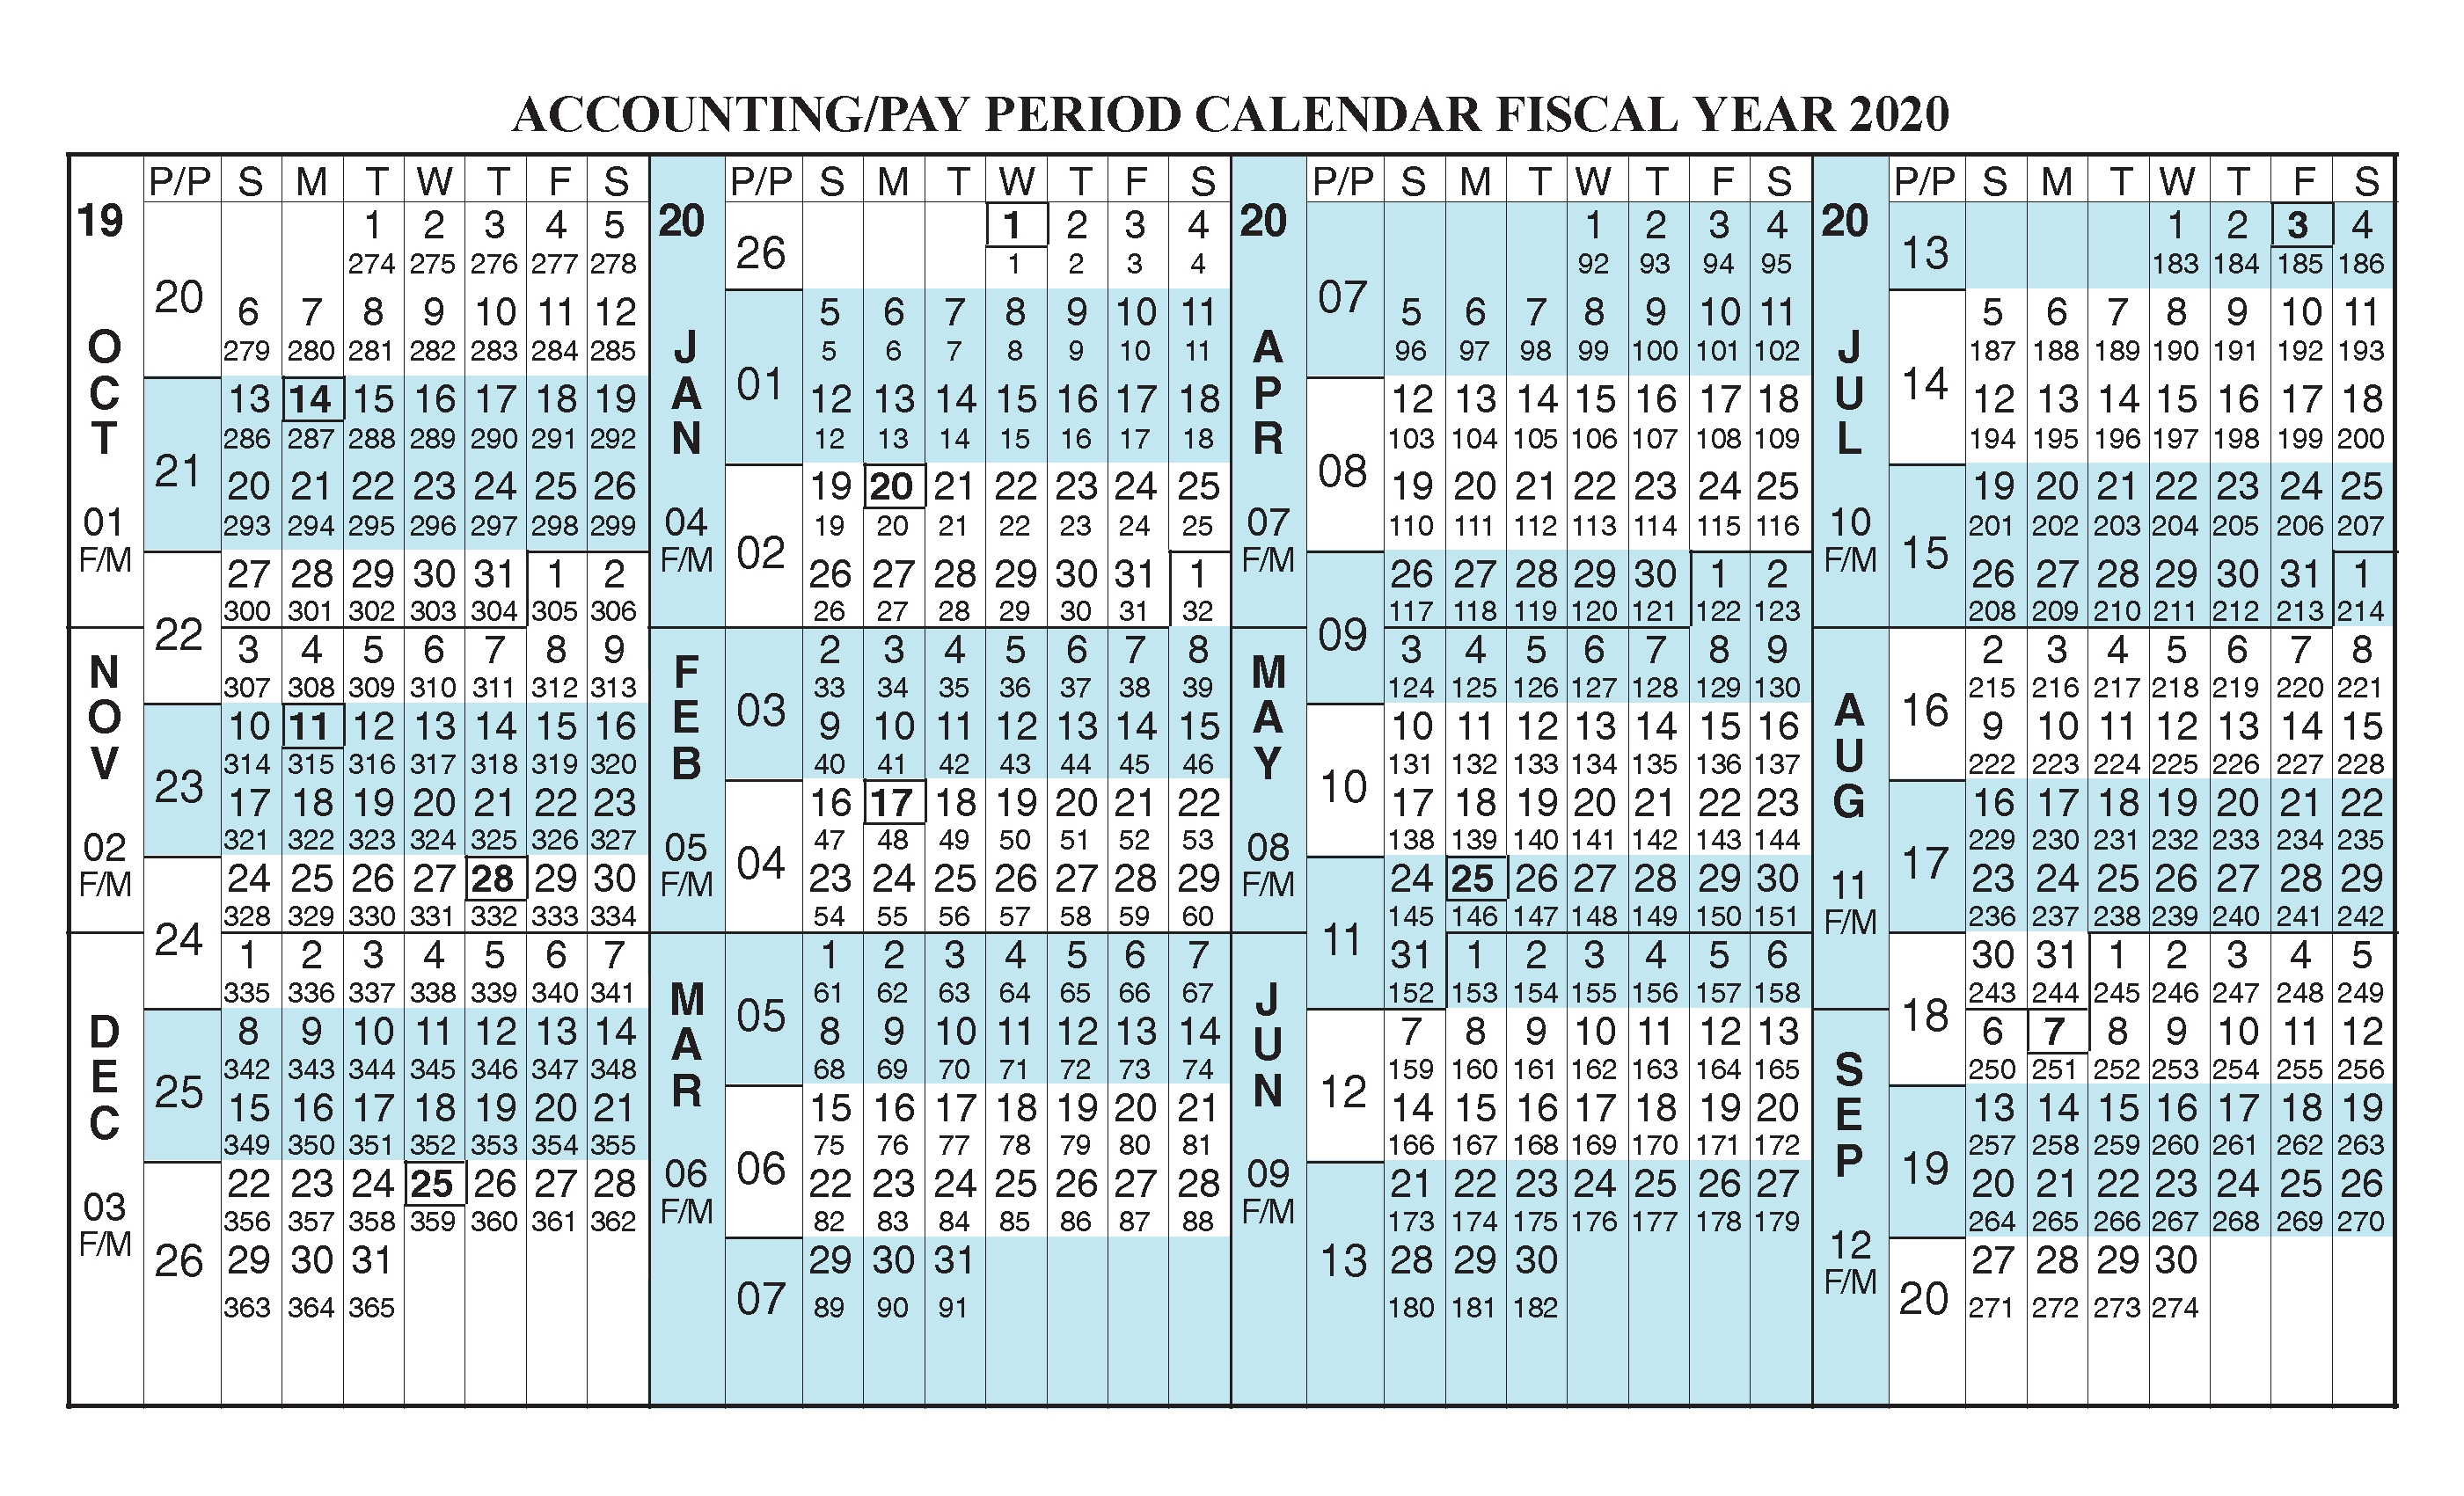 Payroll Calendar 2020 Fiscal Year Calendar [ Oct 2019 - Sep pertaining to Week Numbers Fiscal Year 2019-2020